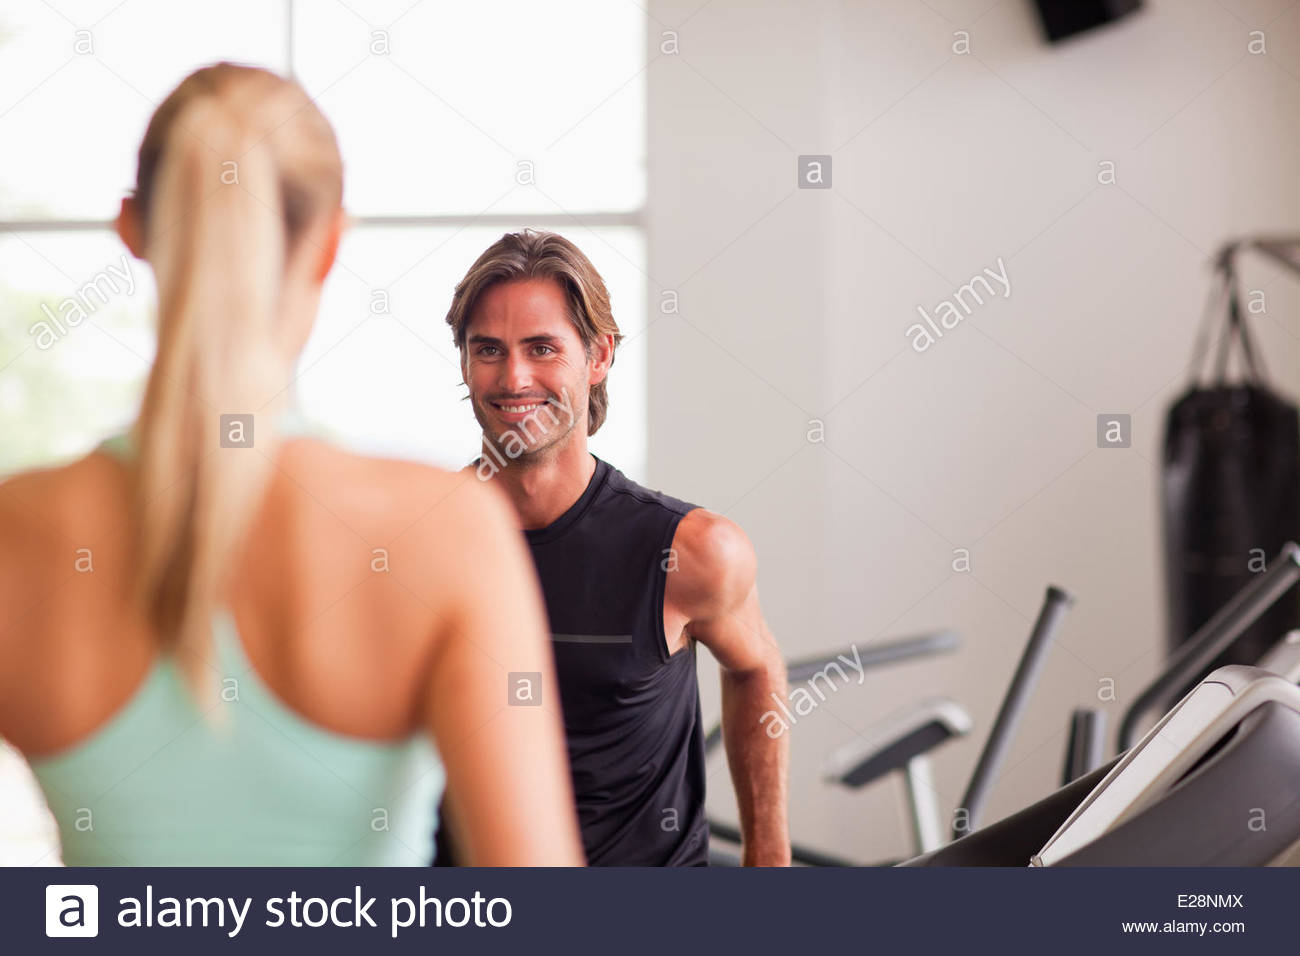 Man and woman talking on treadmills in gymnasium - Stock Image